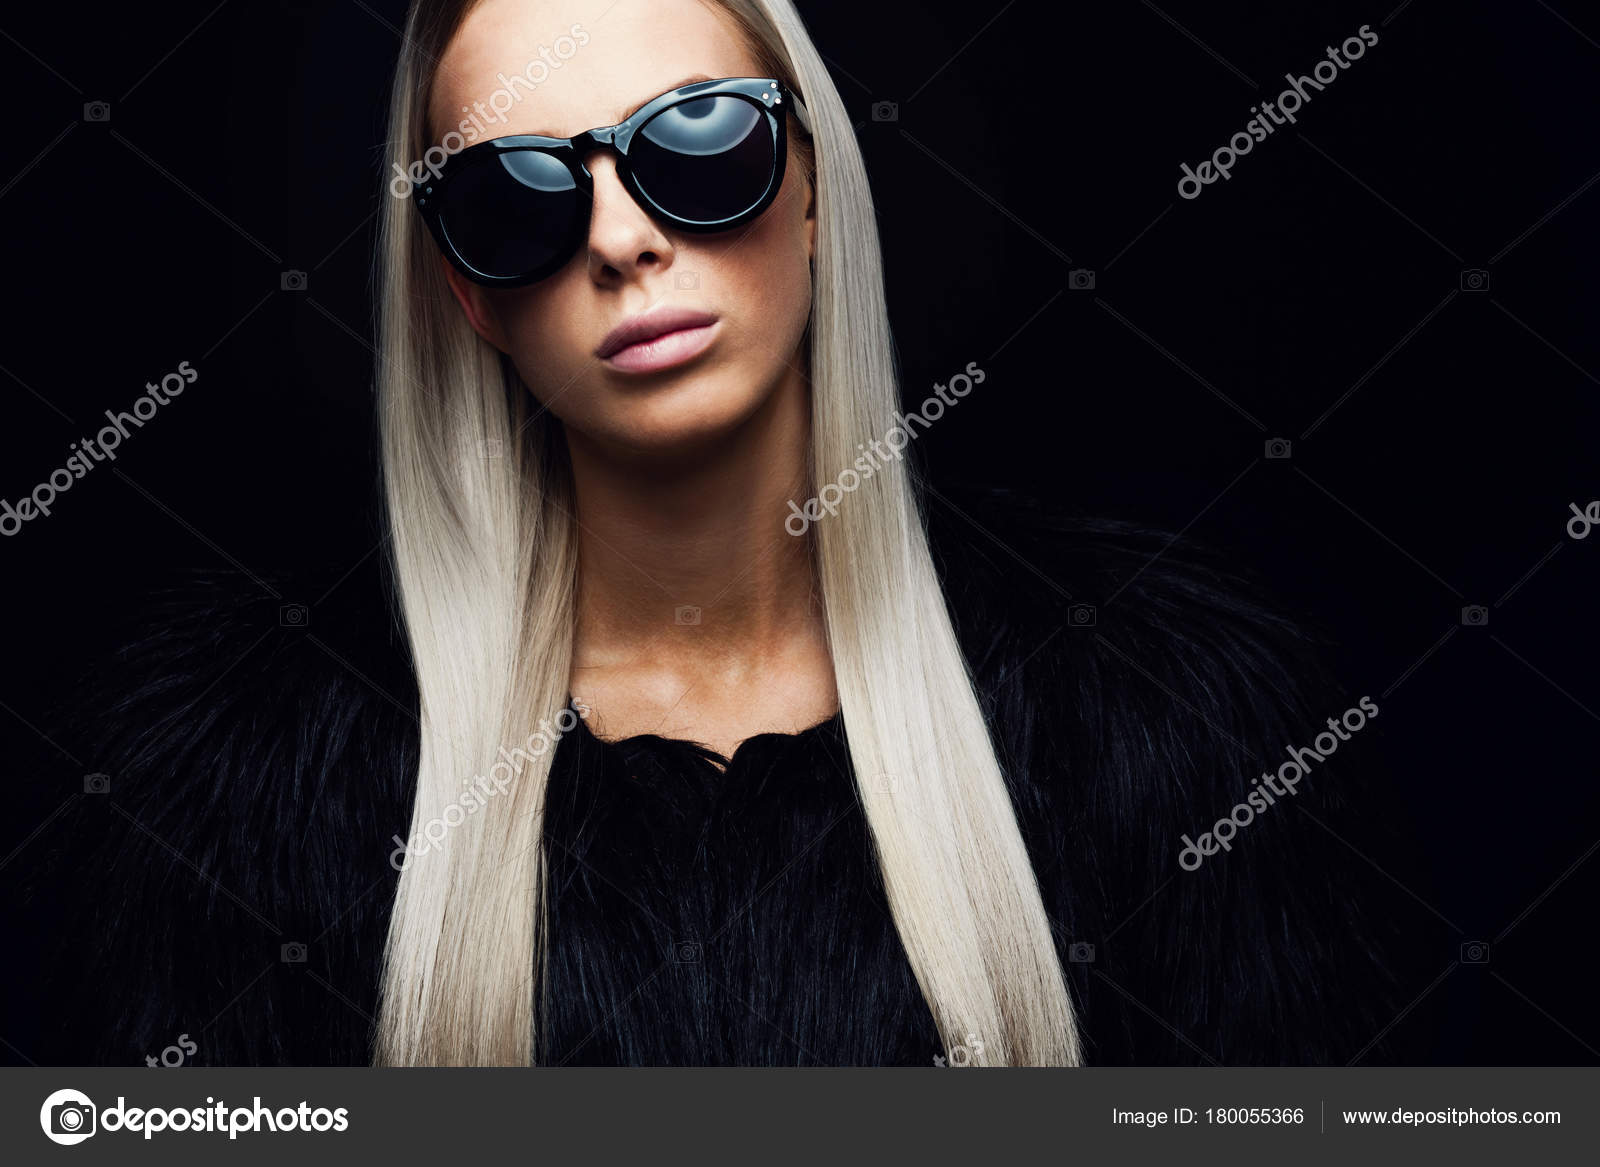 Beautiful young fashion woman with long blonde hair and black furry design  jacket. Cool looking girl with glasses in studio. Black backround.